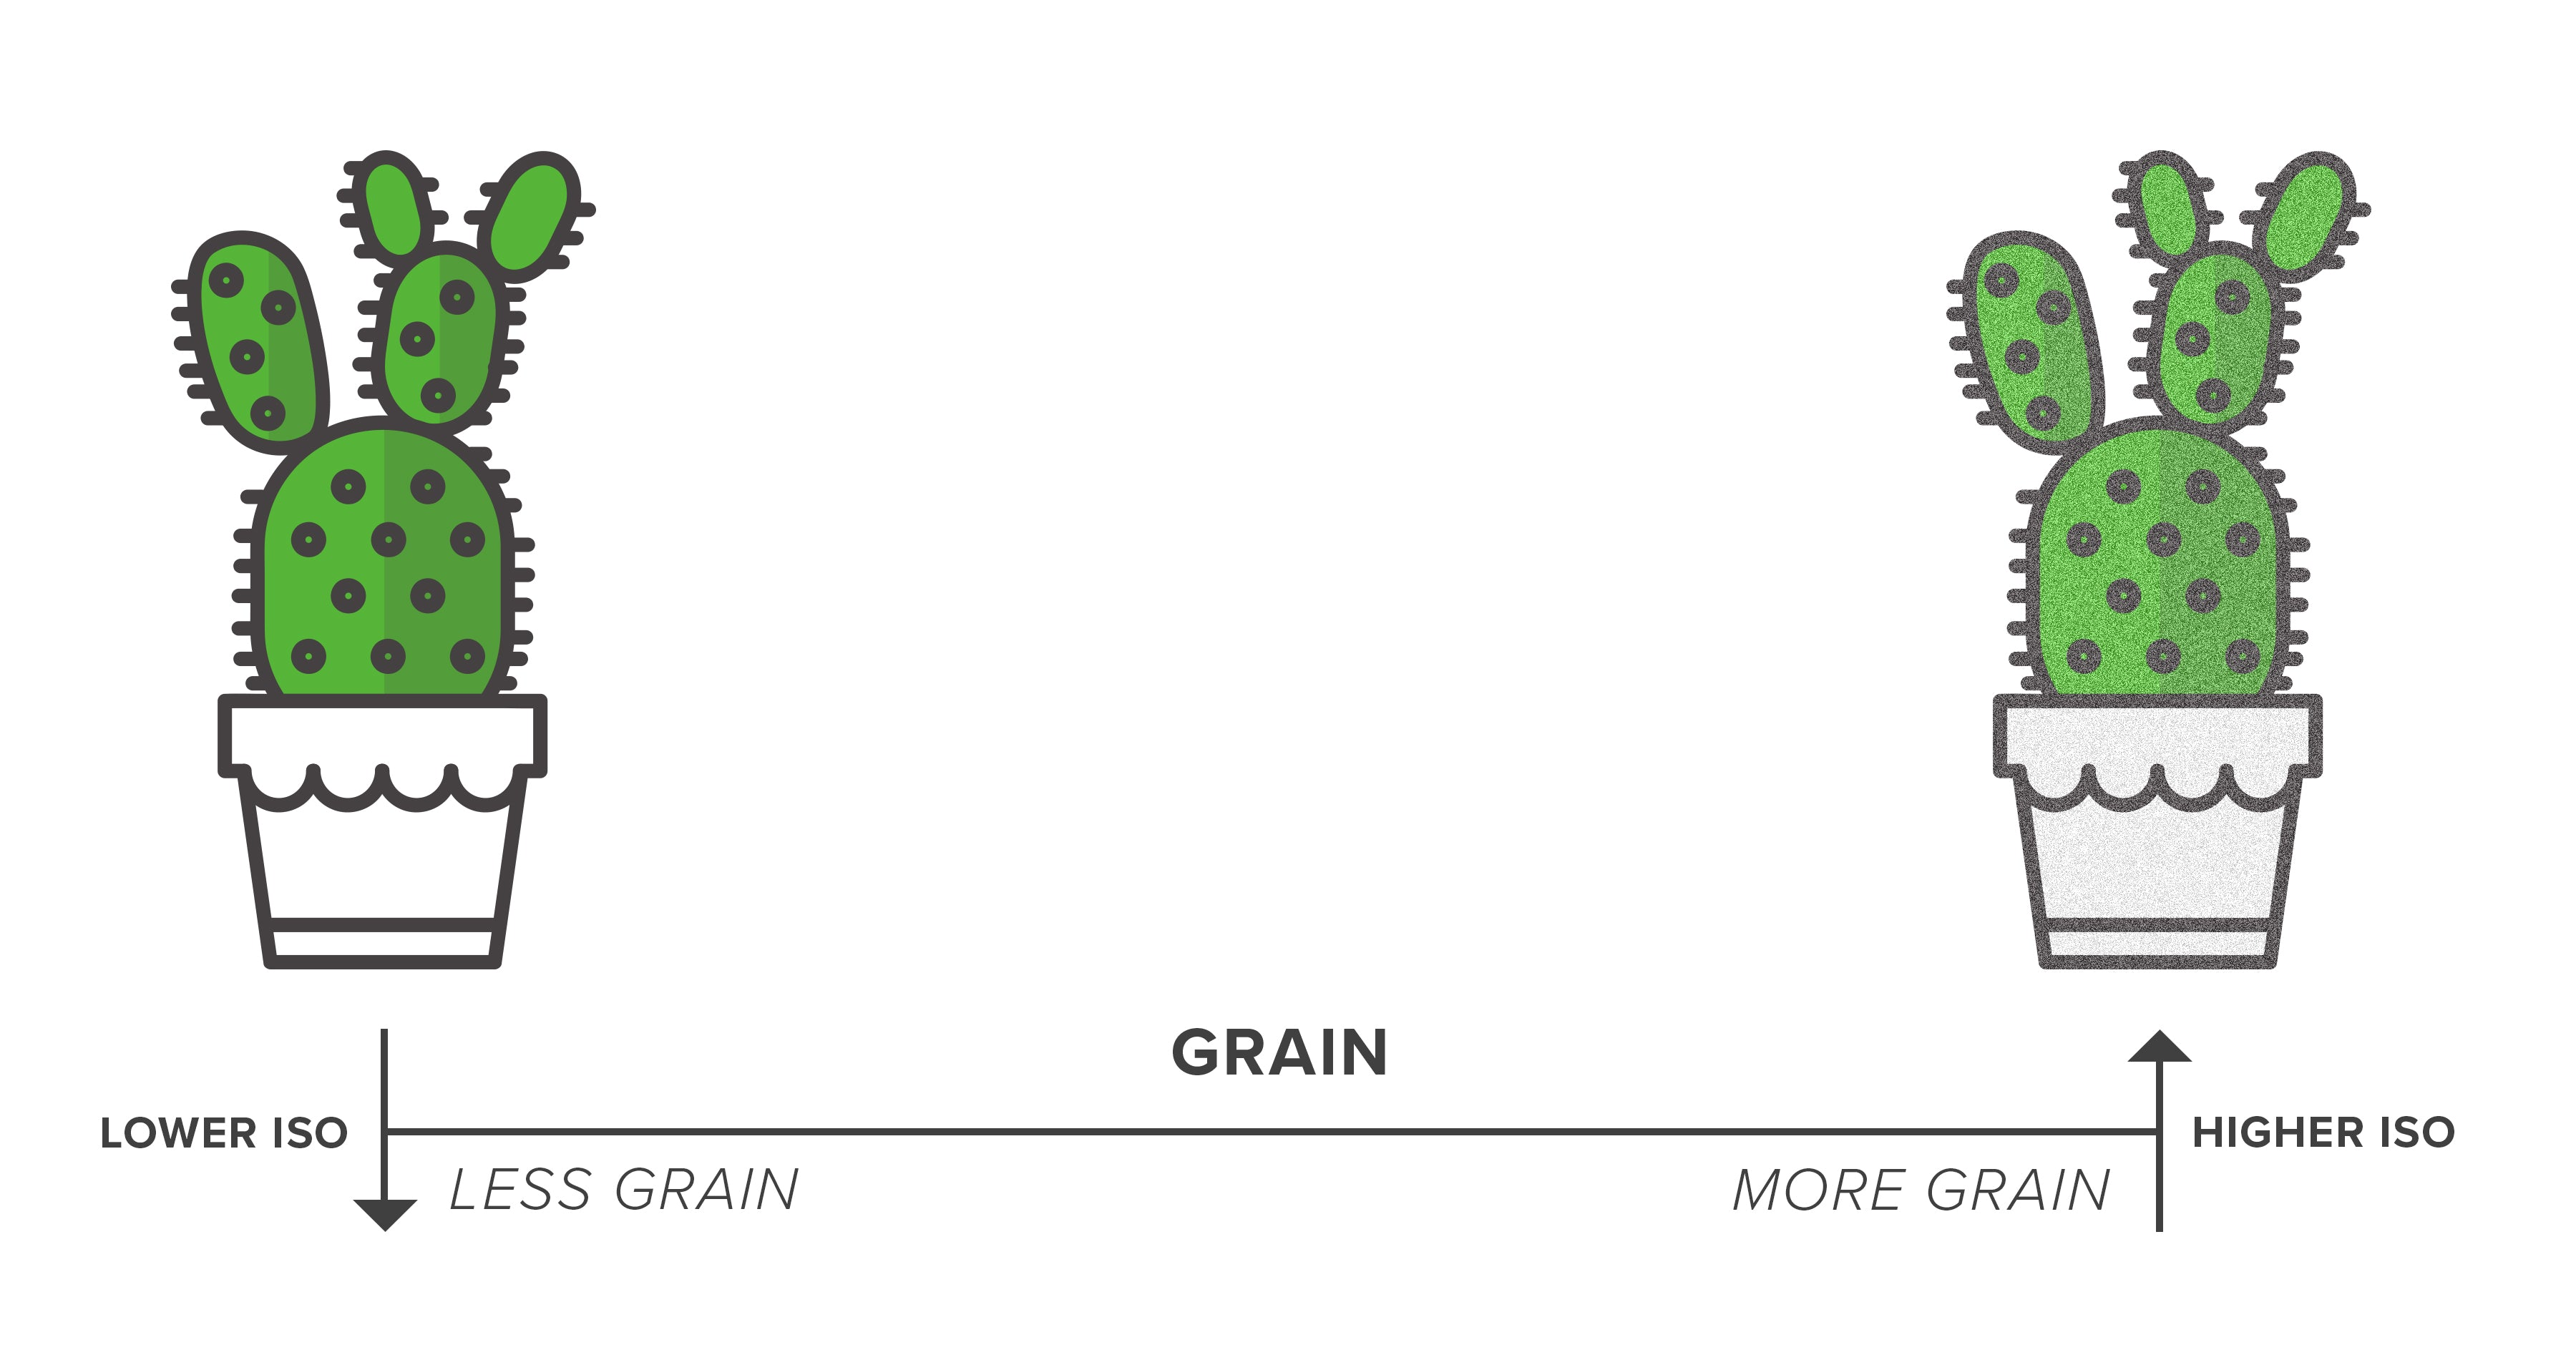 ISO and grain diagram